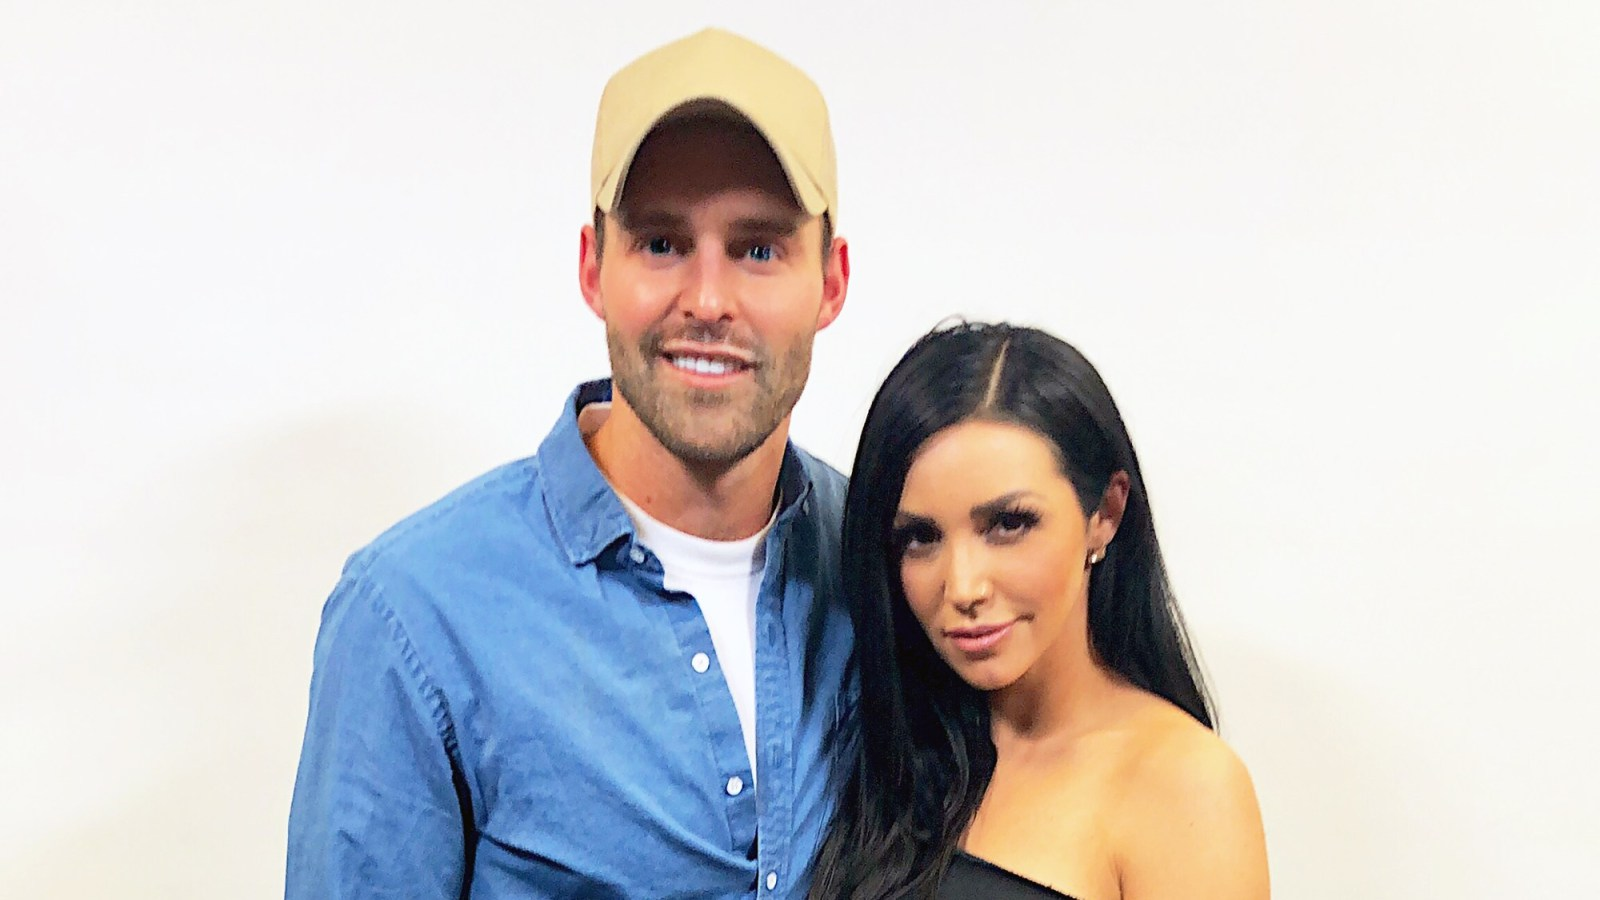 Robby and Scheana